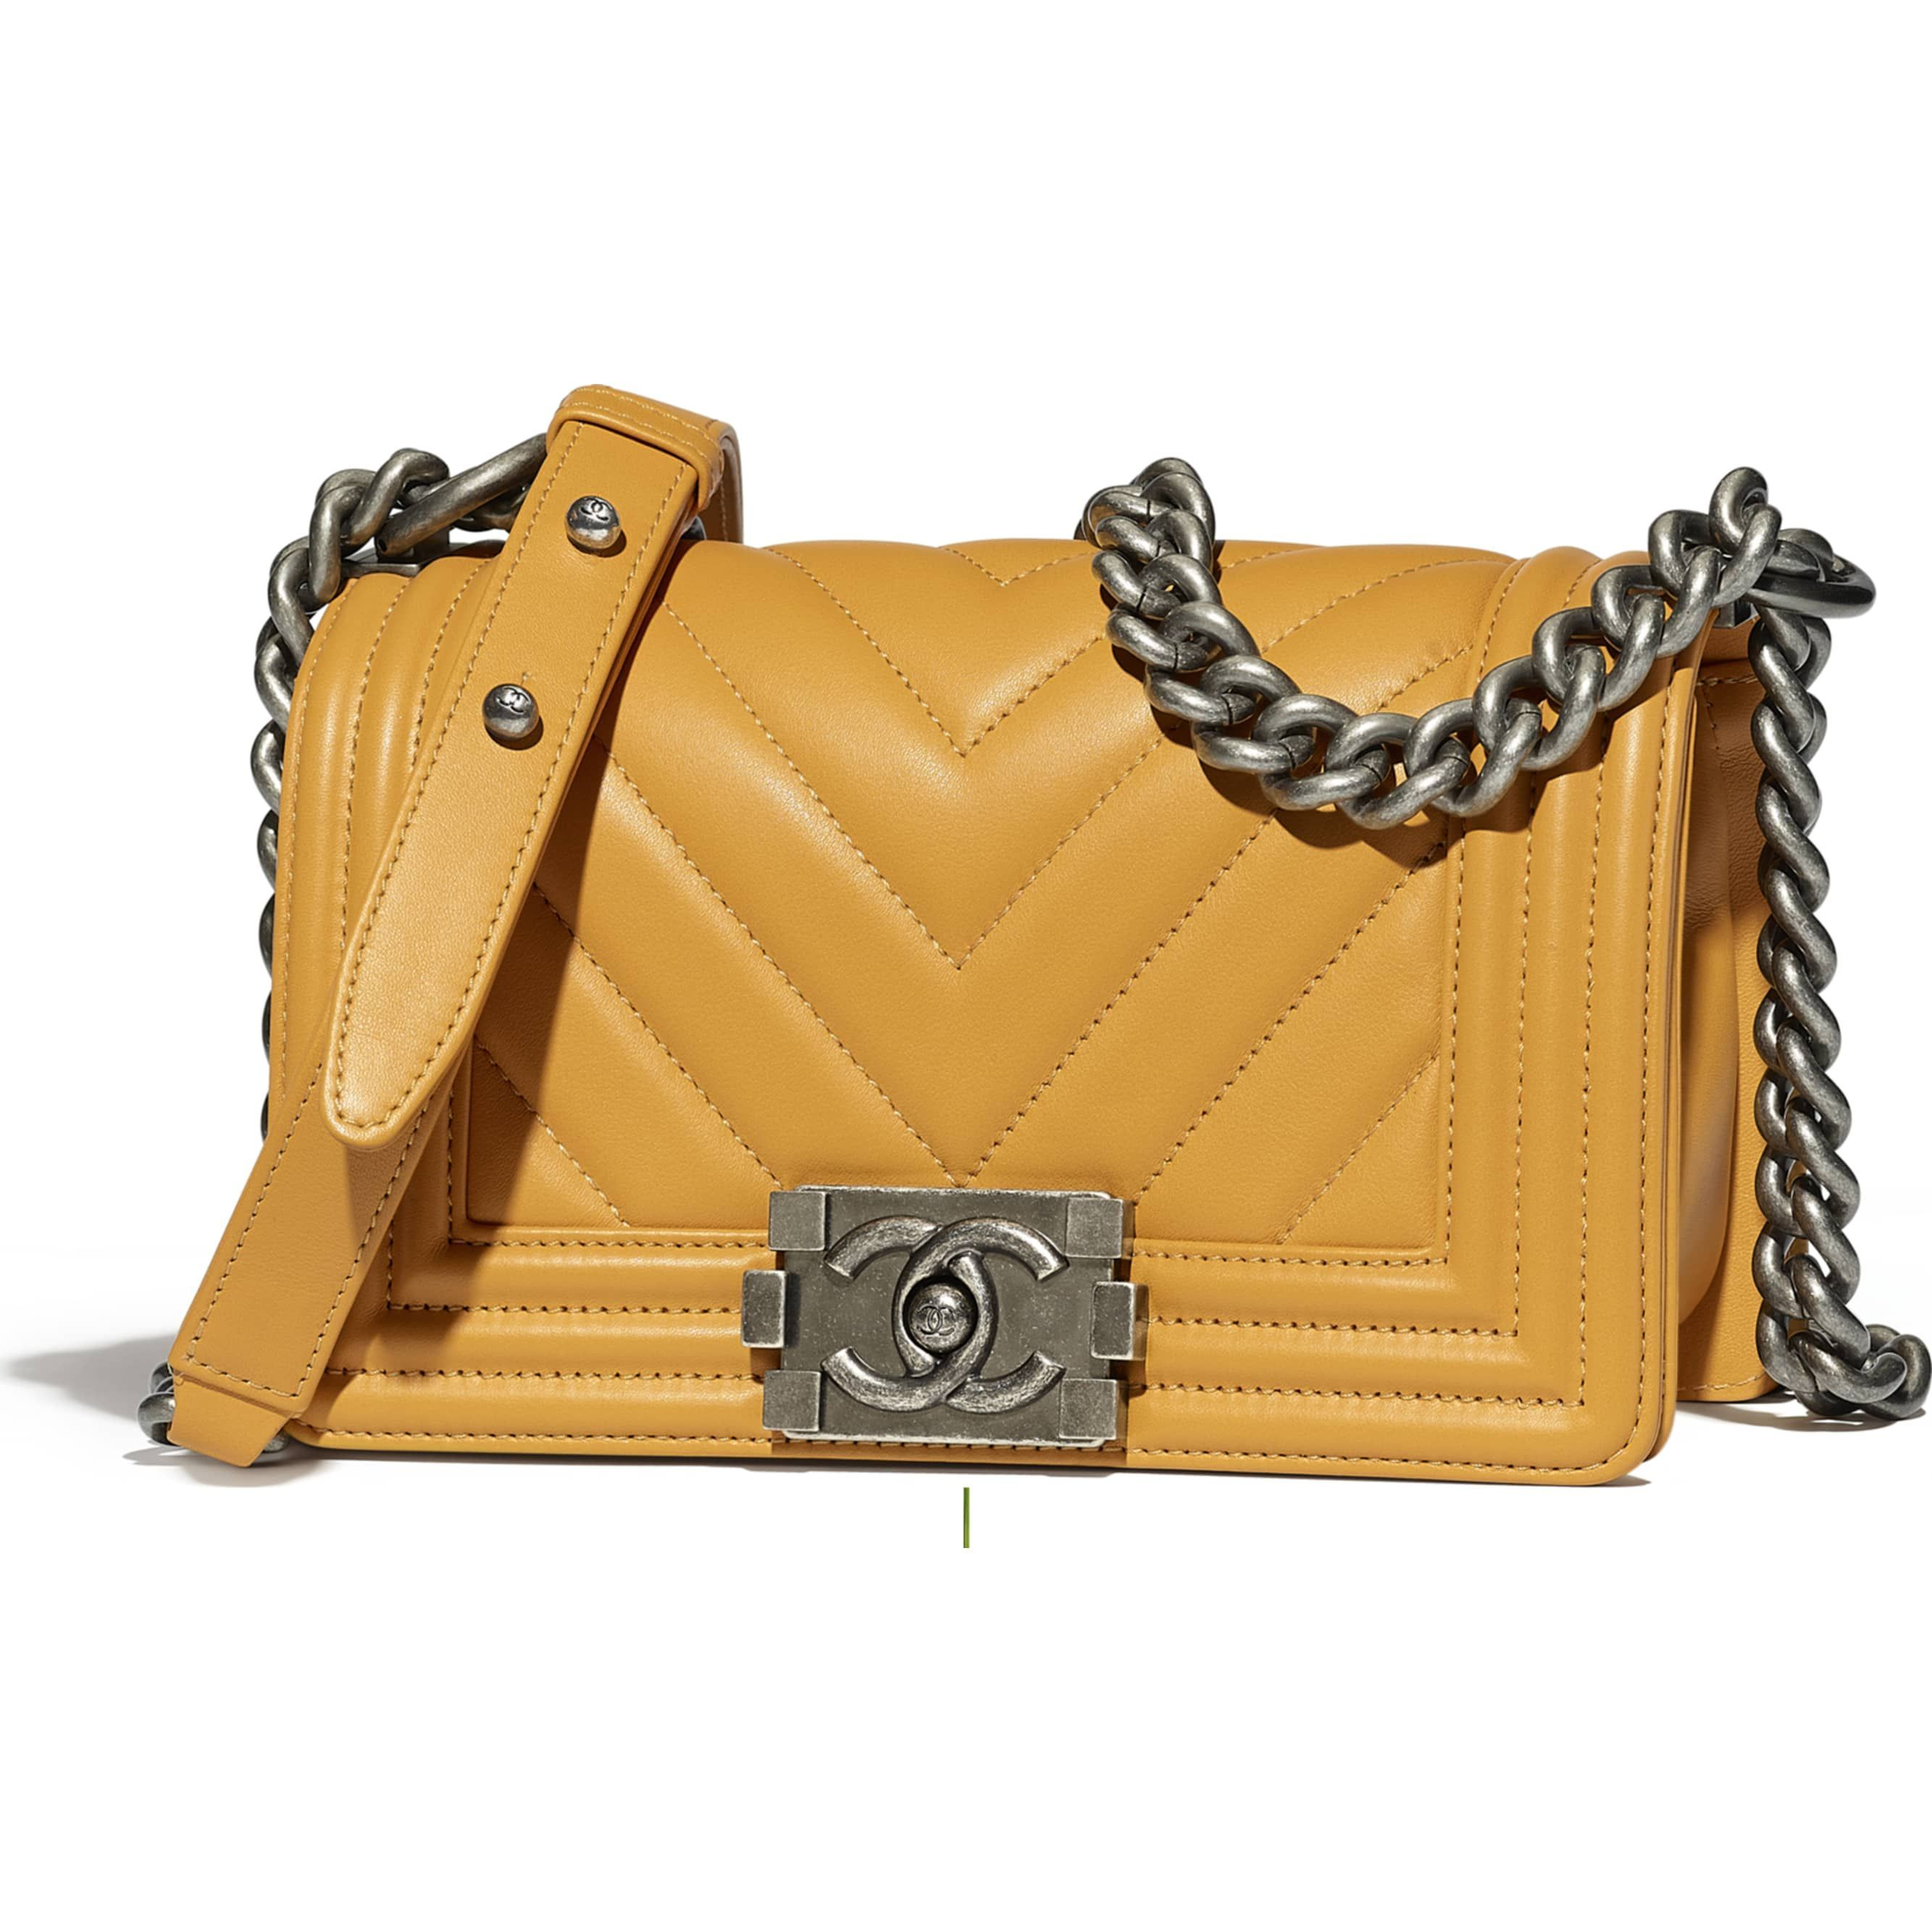 9acc0e9ac2c Calfskin   Ruthenium-Finish Metal Yellow Small BOY CHANEL Handbag   CHANEL   chanelhandbags